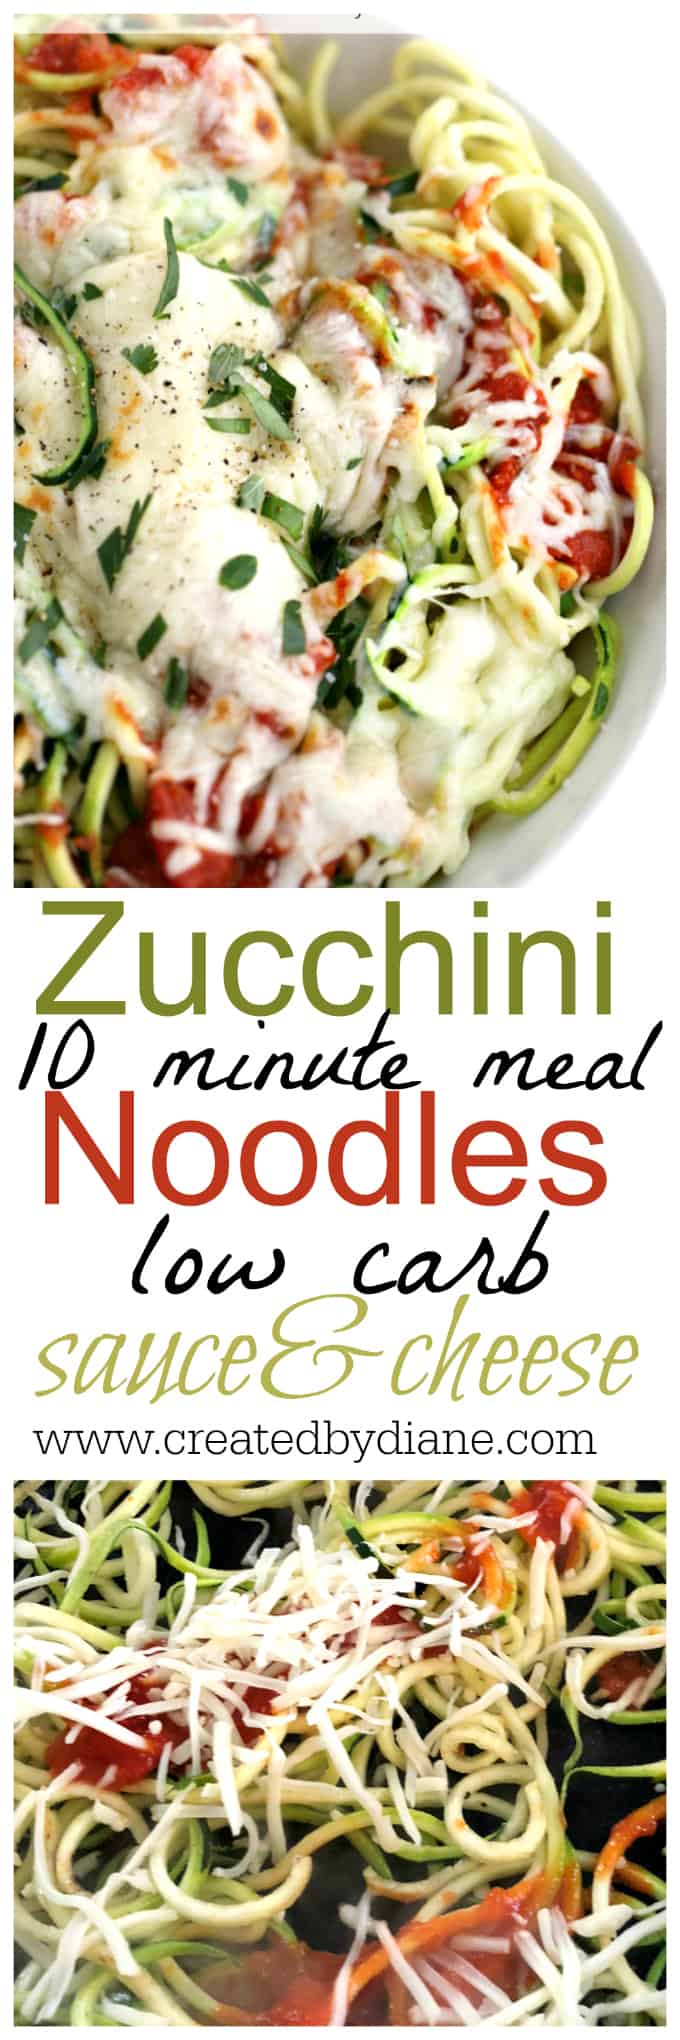 zucchini noodles with sauce and cheese 10 minutes meal low carb, gluten free, paleo, keto recipe www.createdbydiane.com